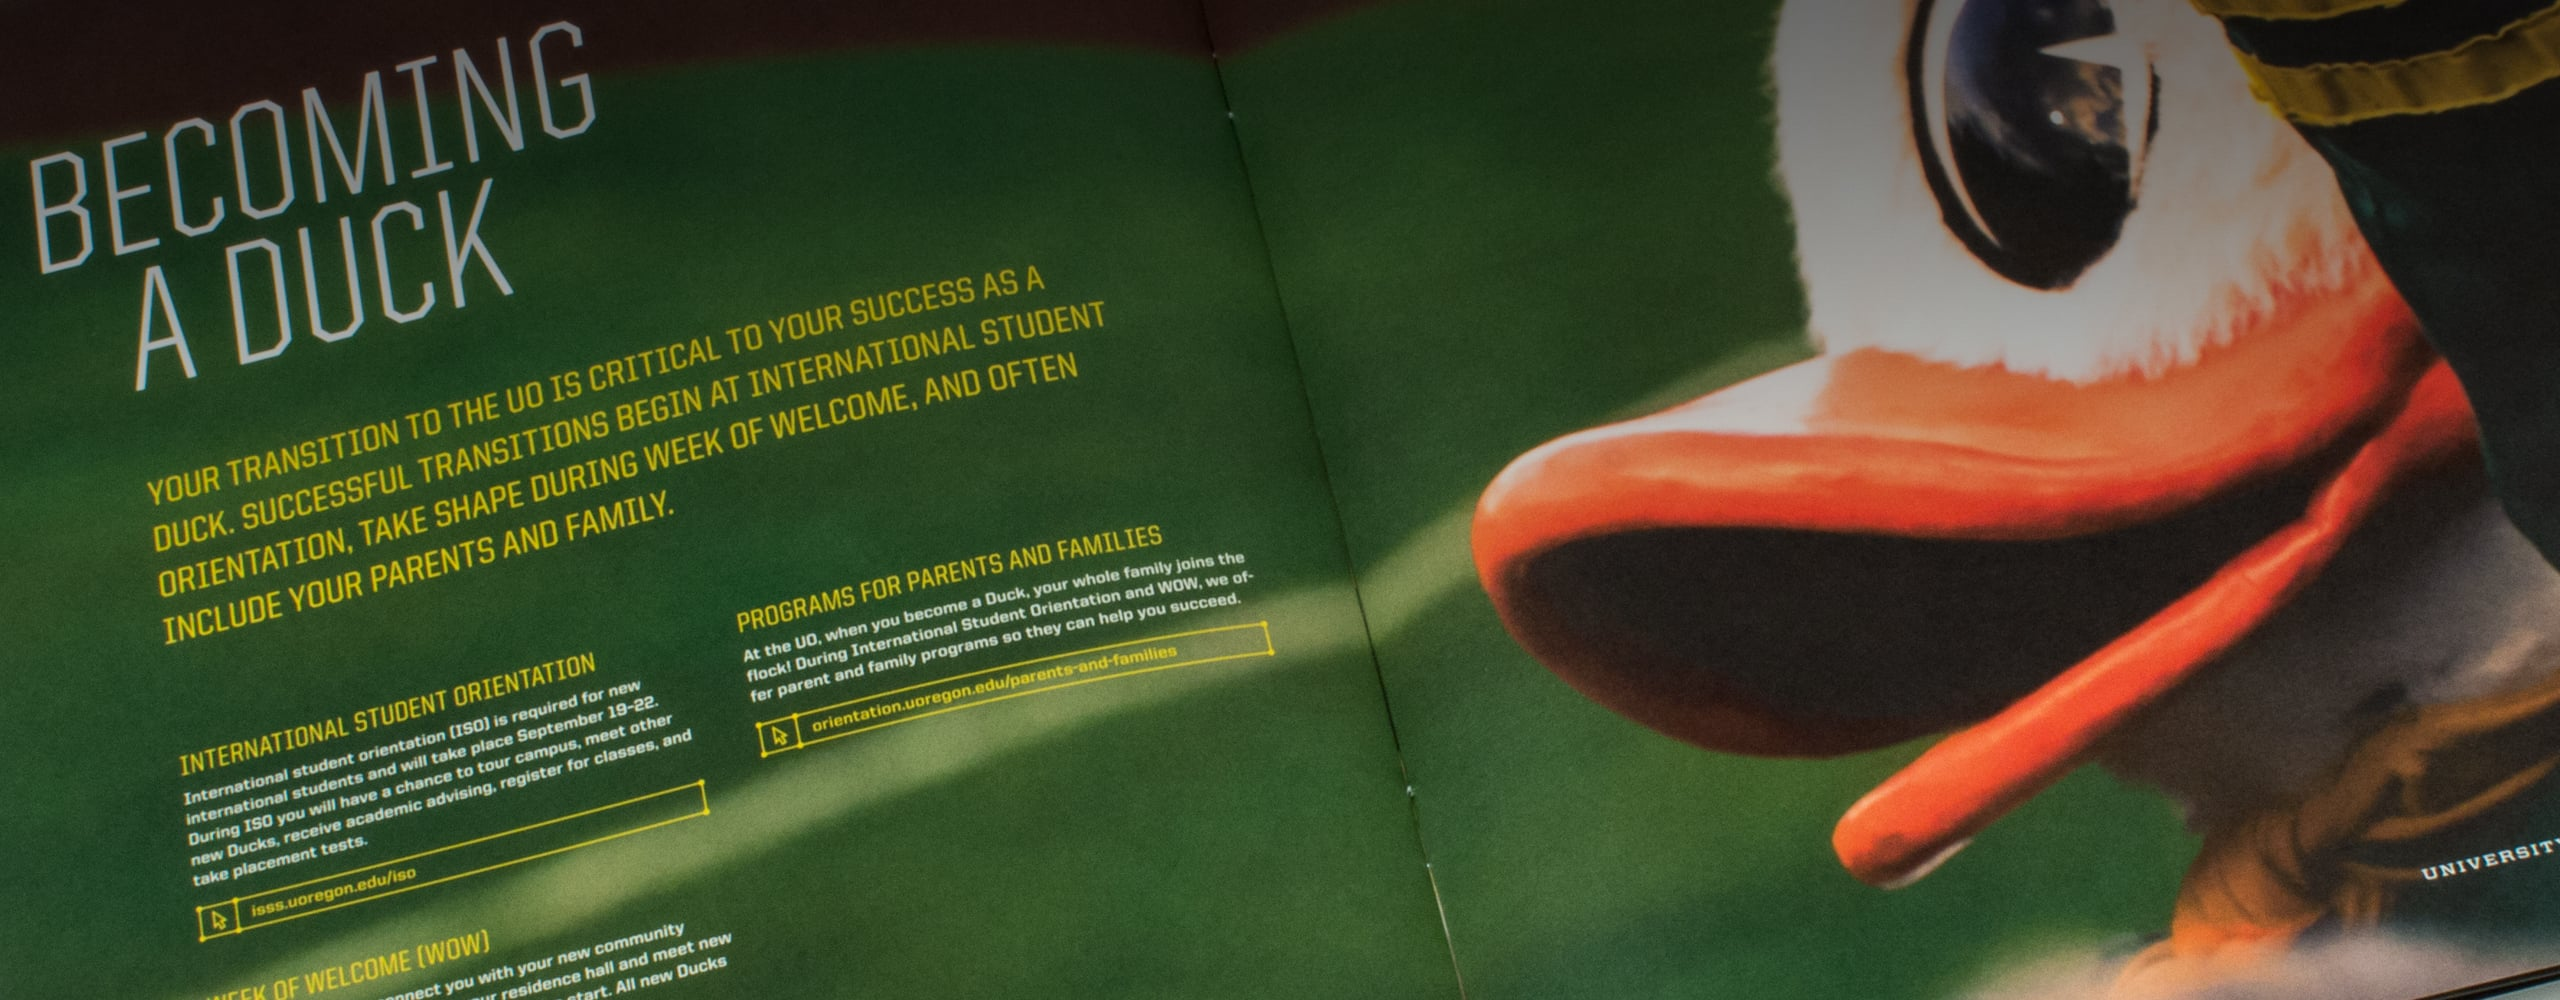 Banner for University of Oregon Recruiting Campaign